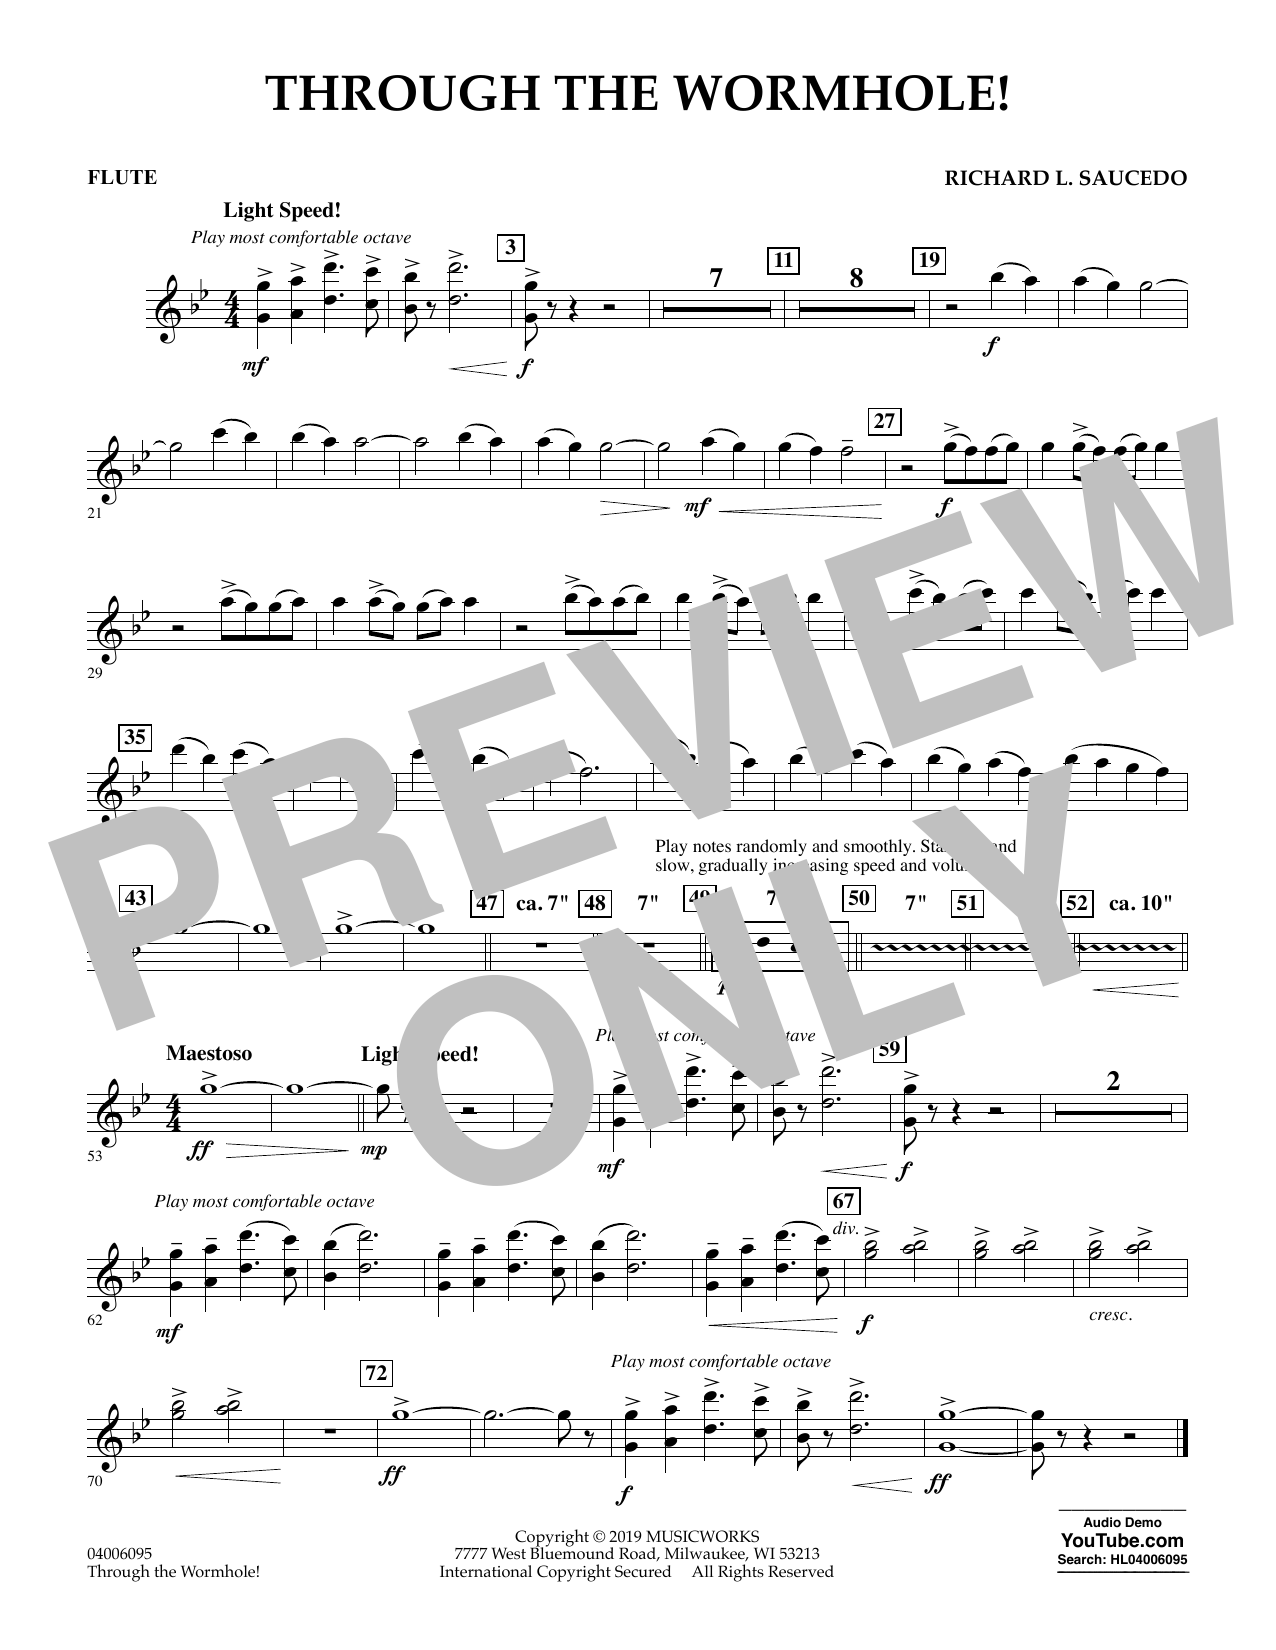 Richard L. Saucedo Through the Worm Hole - Flute sheet music preview music notes and score for Concert Band including 1 page(s)